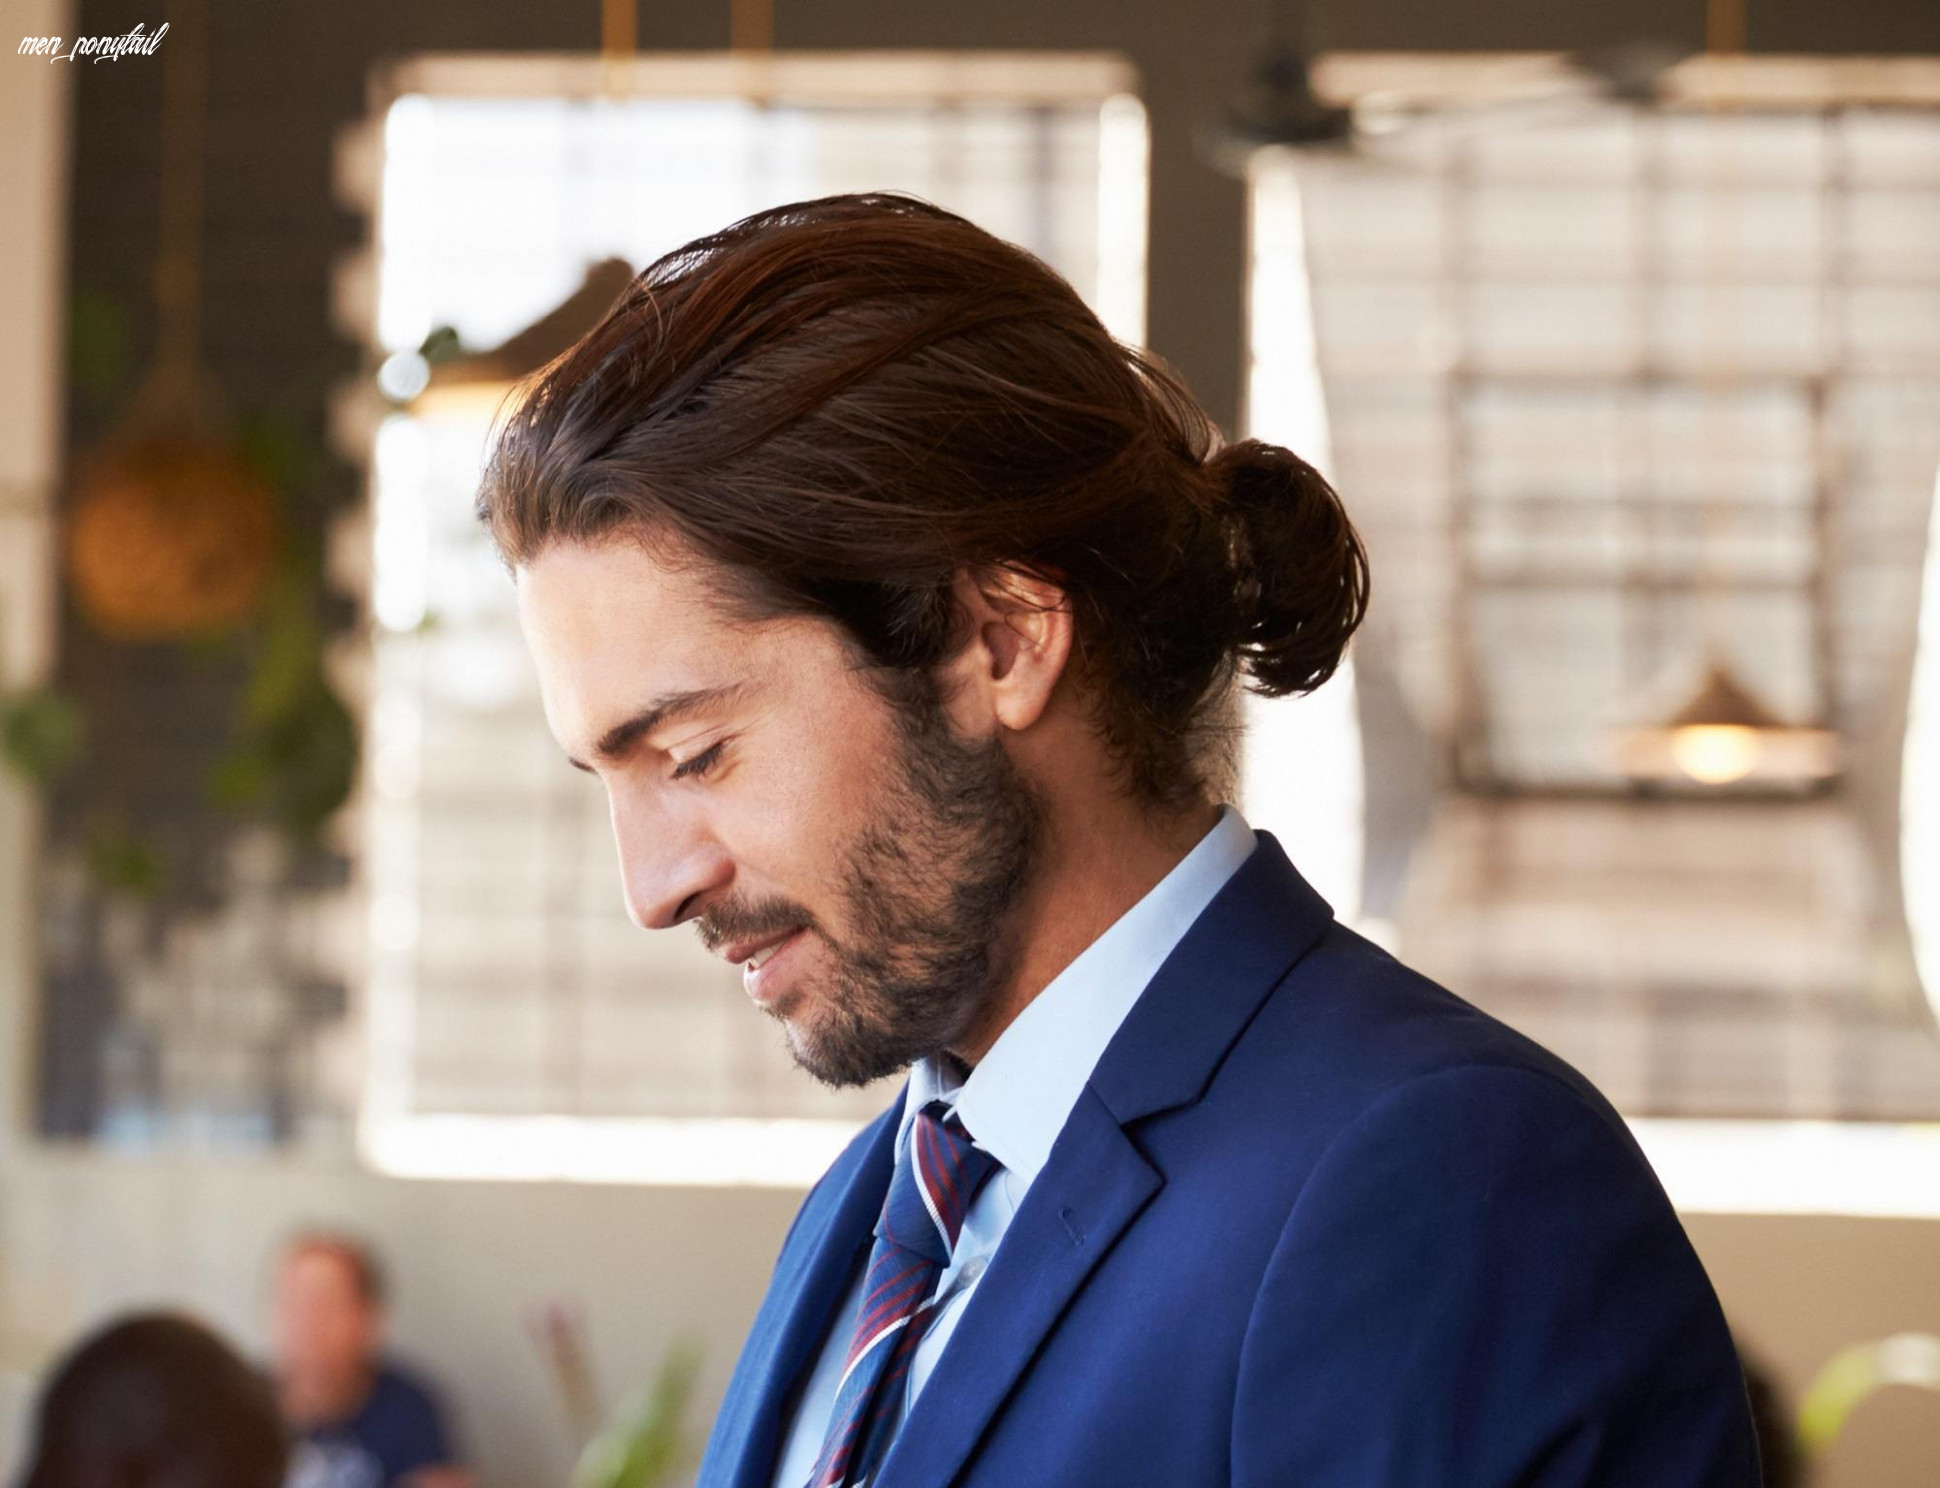 Man ponytail hairstyles in 10 that you can create at home men ponytail